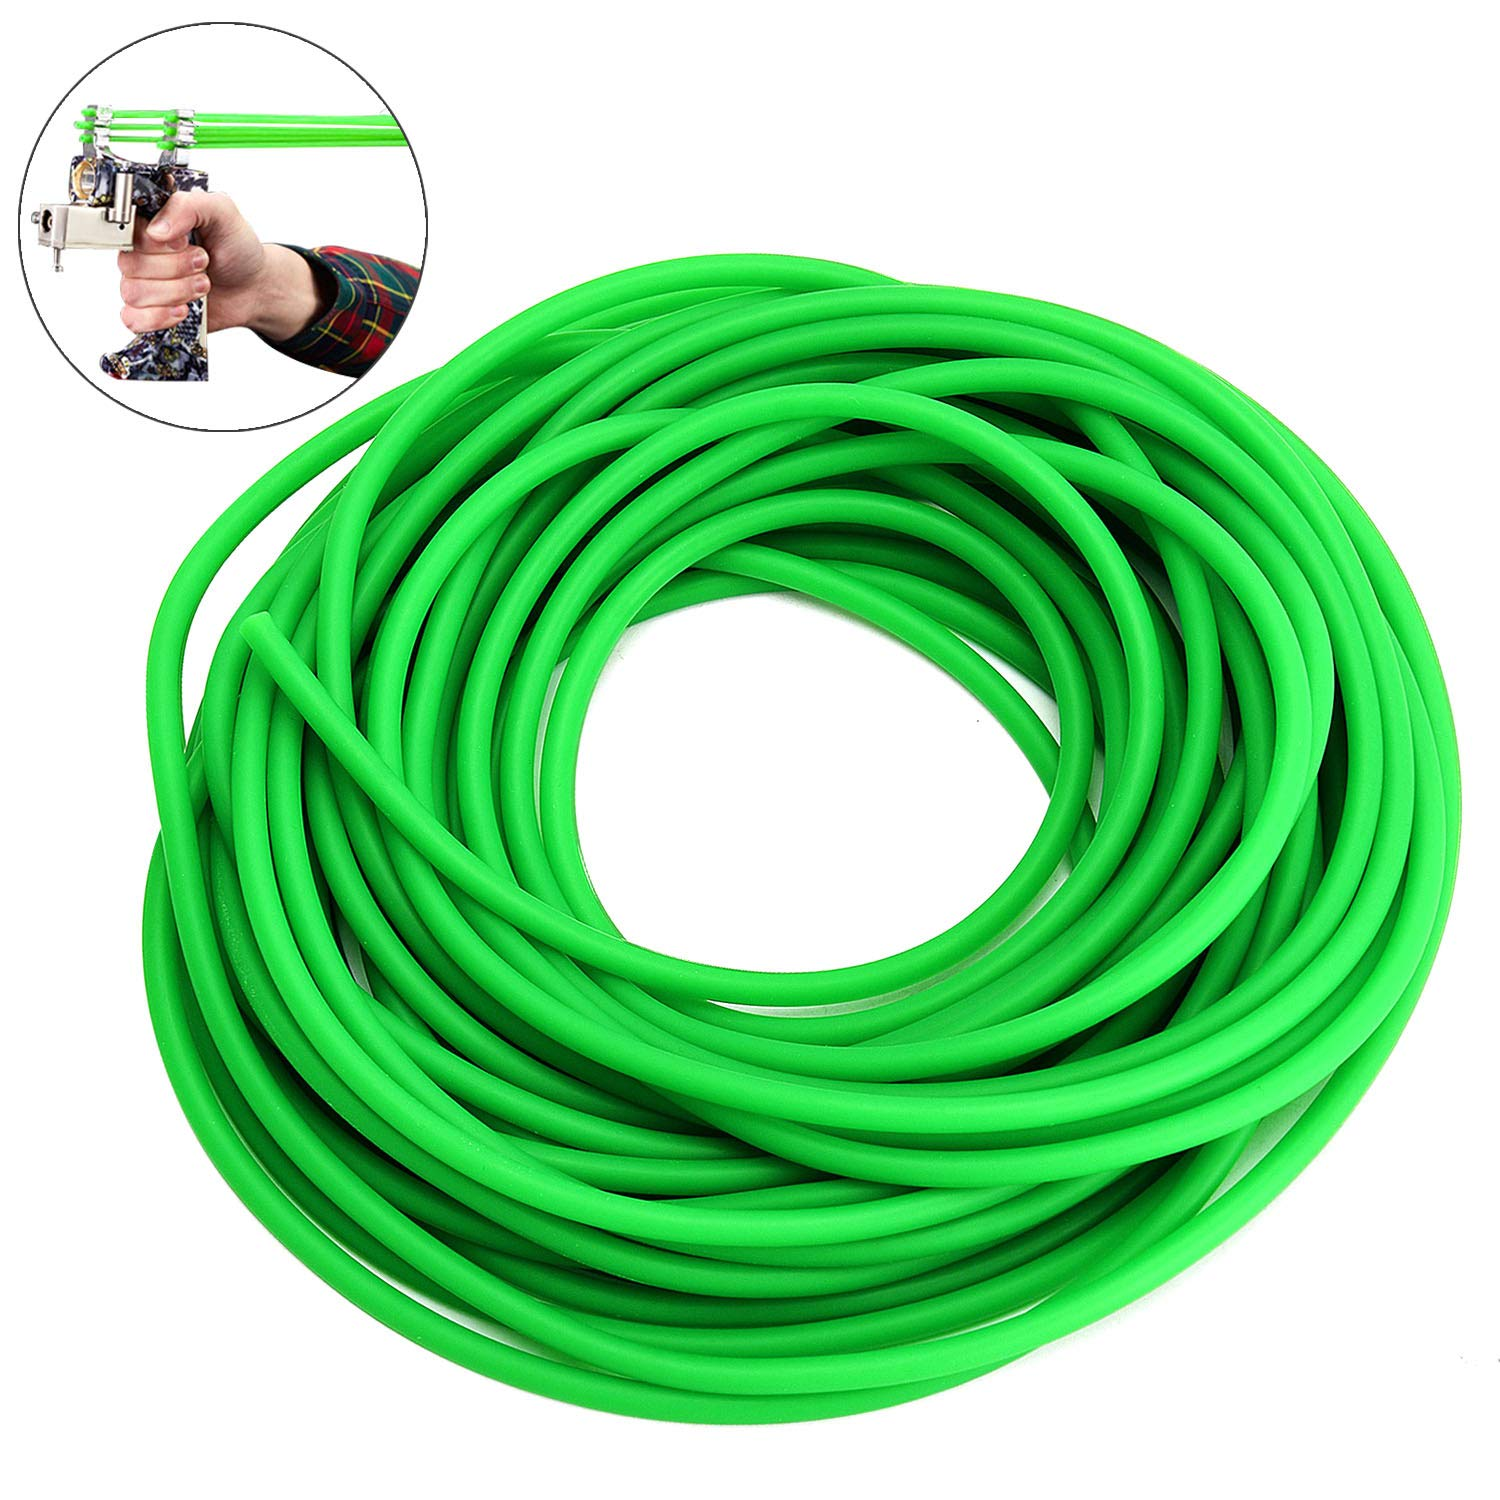 TOBWOLF 32.8FT Rubber Latex Tube, 1/5'' OD, 2/25'' ID Slingshot Catapult Speargun Band, Strong & Elastic, Profesional Surgical Tube for Outdoor Hunting, Physical Therapy - Fluorescent Green by TOBWOLF